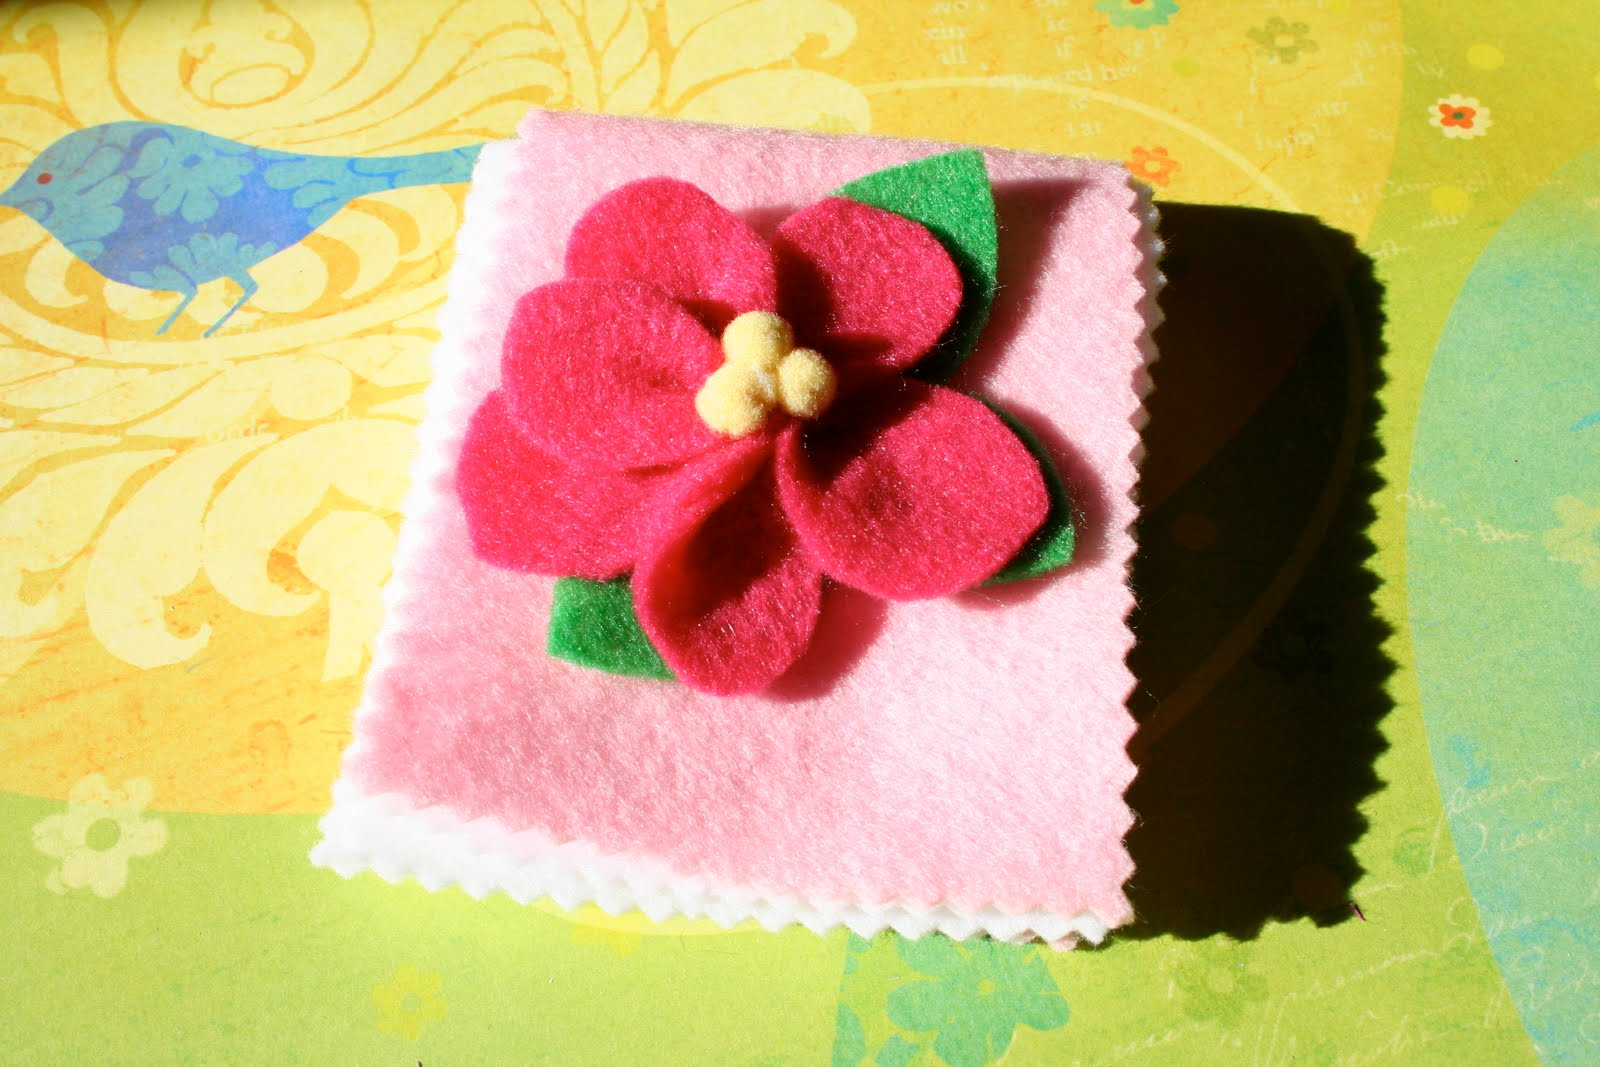 Great Diy Presents For Mom: Pink And Green Mama: * Homemade Mother's Day Gift Ideas